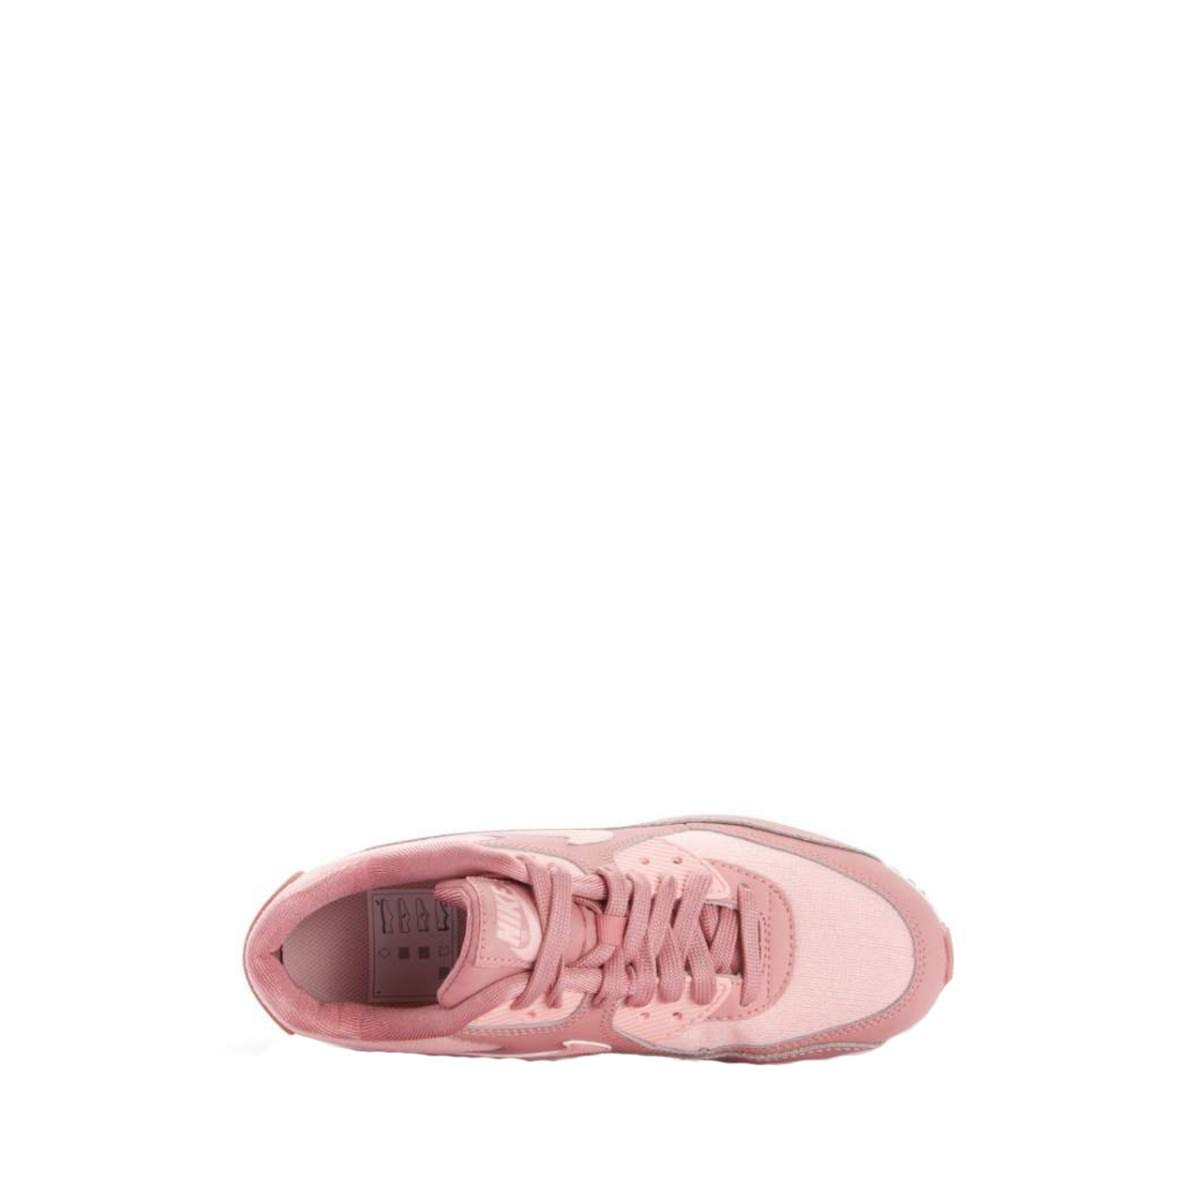 NIKE Damen Air Max 90 Se Mesh Pink/Storm (Gs) Sneakers, Mehrfarbig (Rust Pink/Storm Mesh Pink/Guava Ice/Weiß 001) 825571